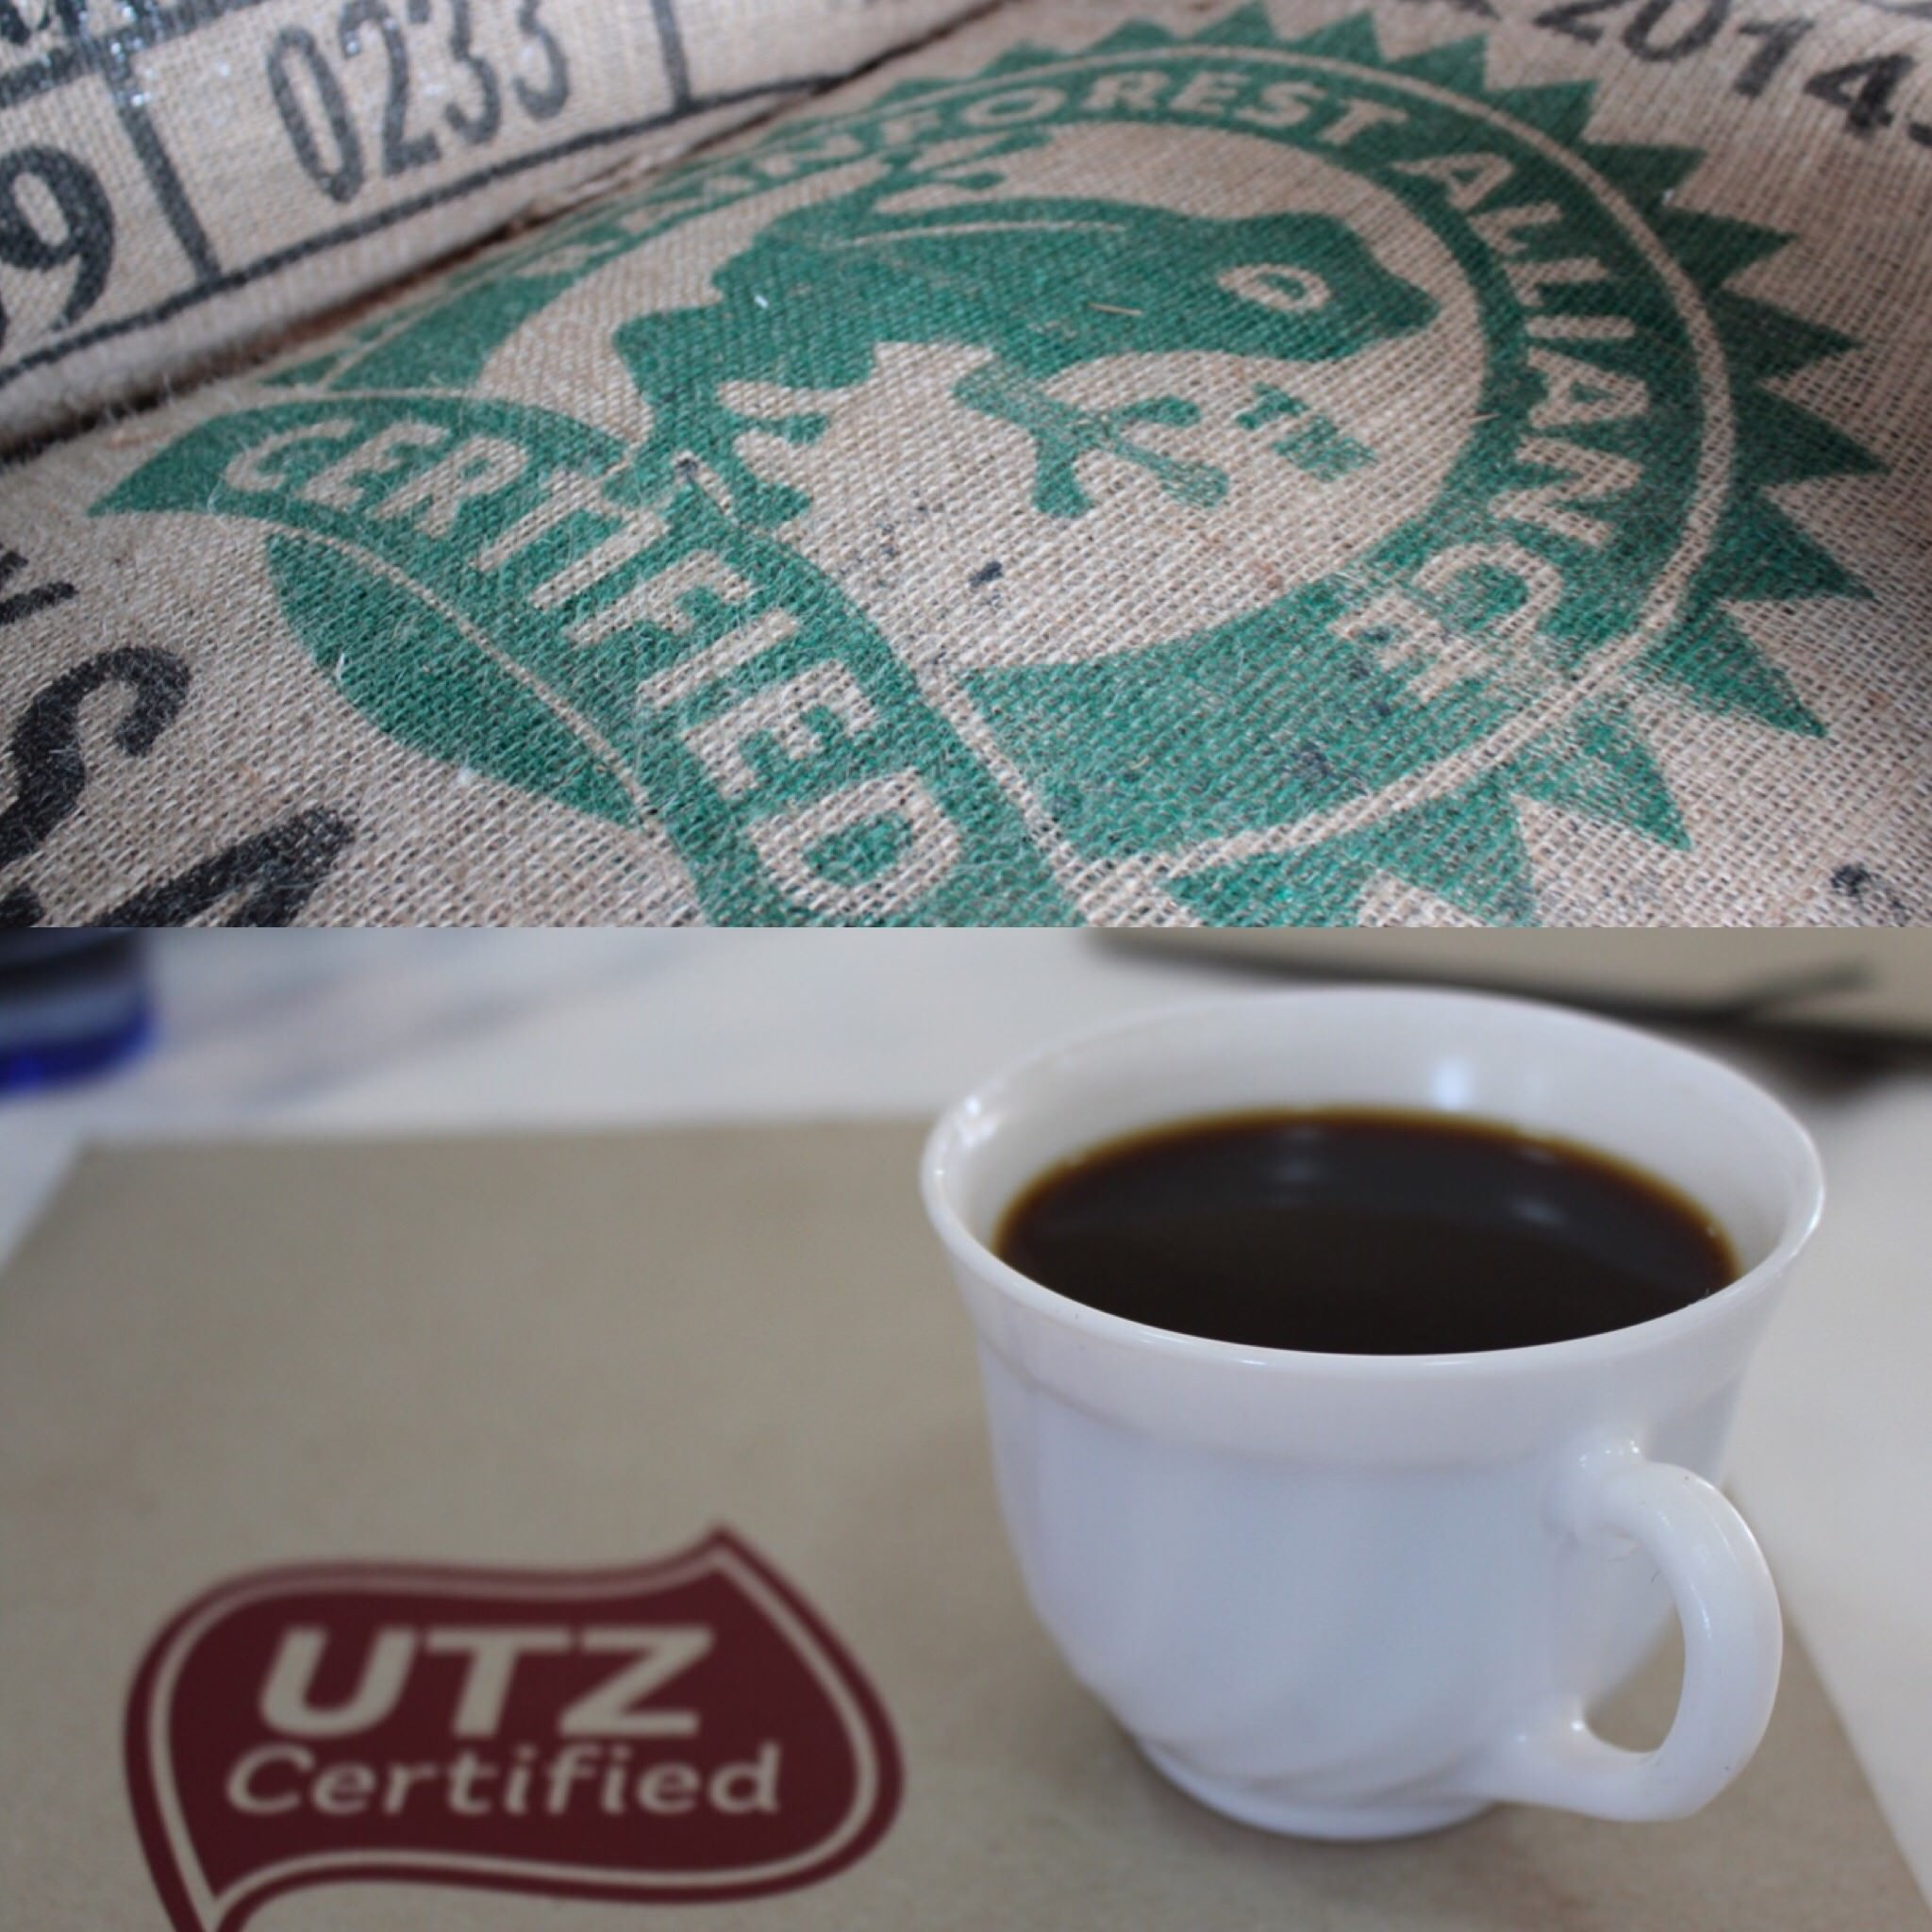 Joining forces with UTZ: An Update - Rainforest Alliance | For Business